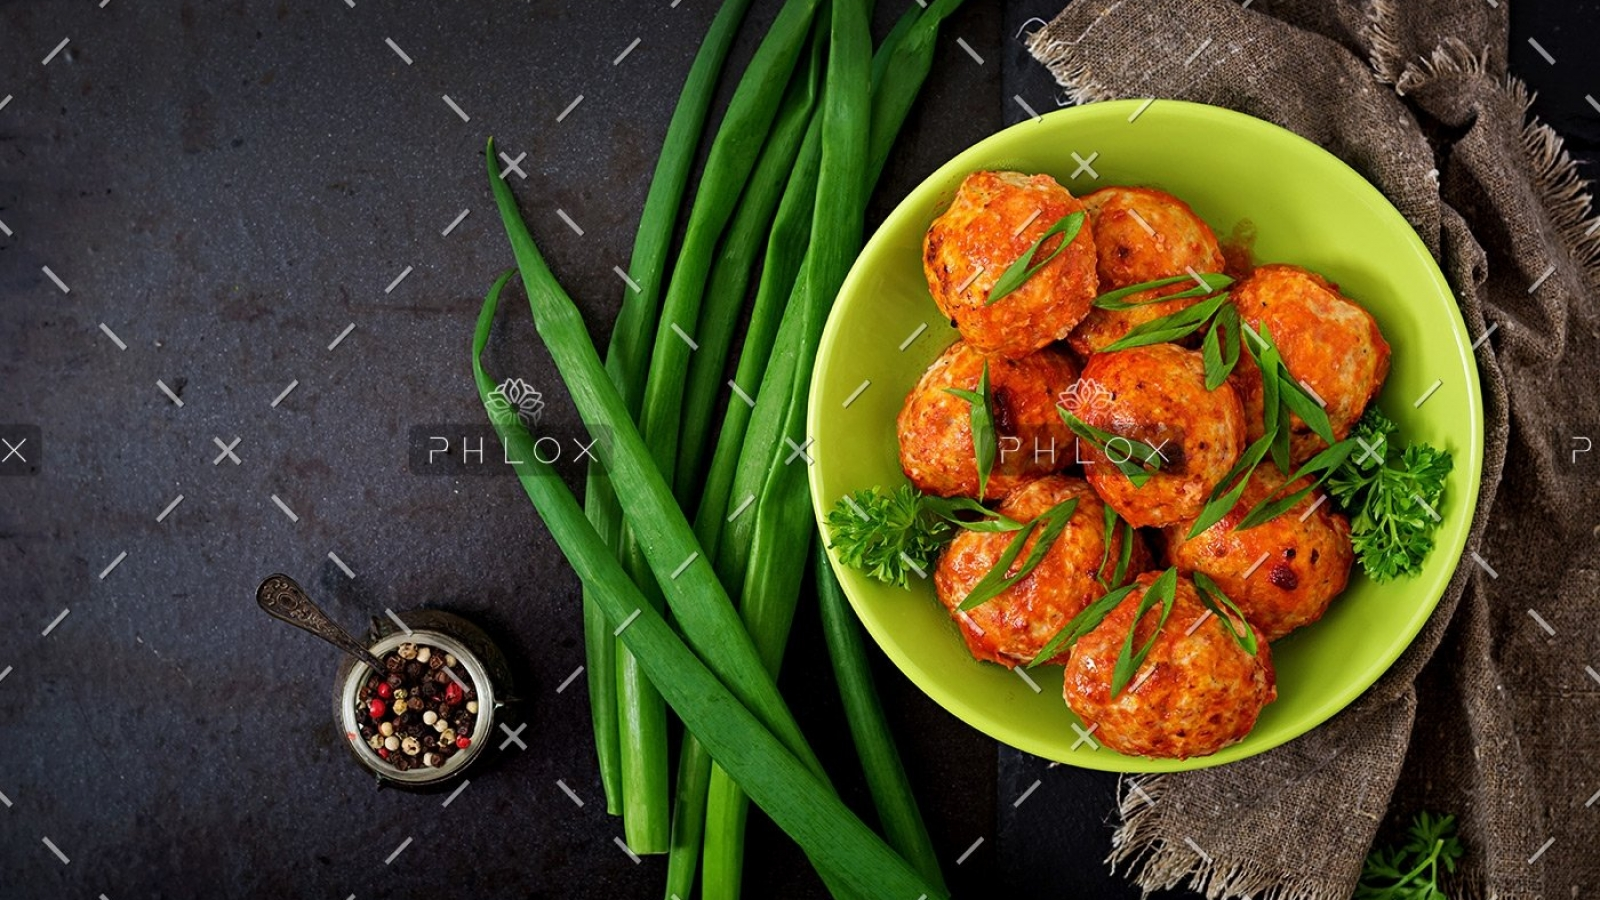 demo-attachment-15-baked-meatballs-of-chicken-fillet-in-tomato-sauce-PGK6PTM